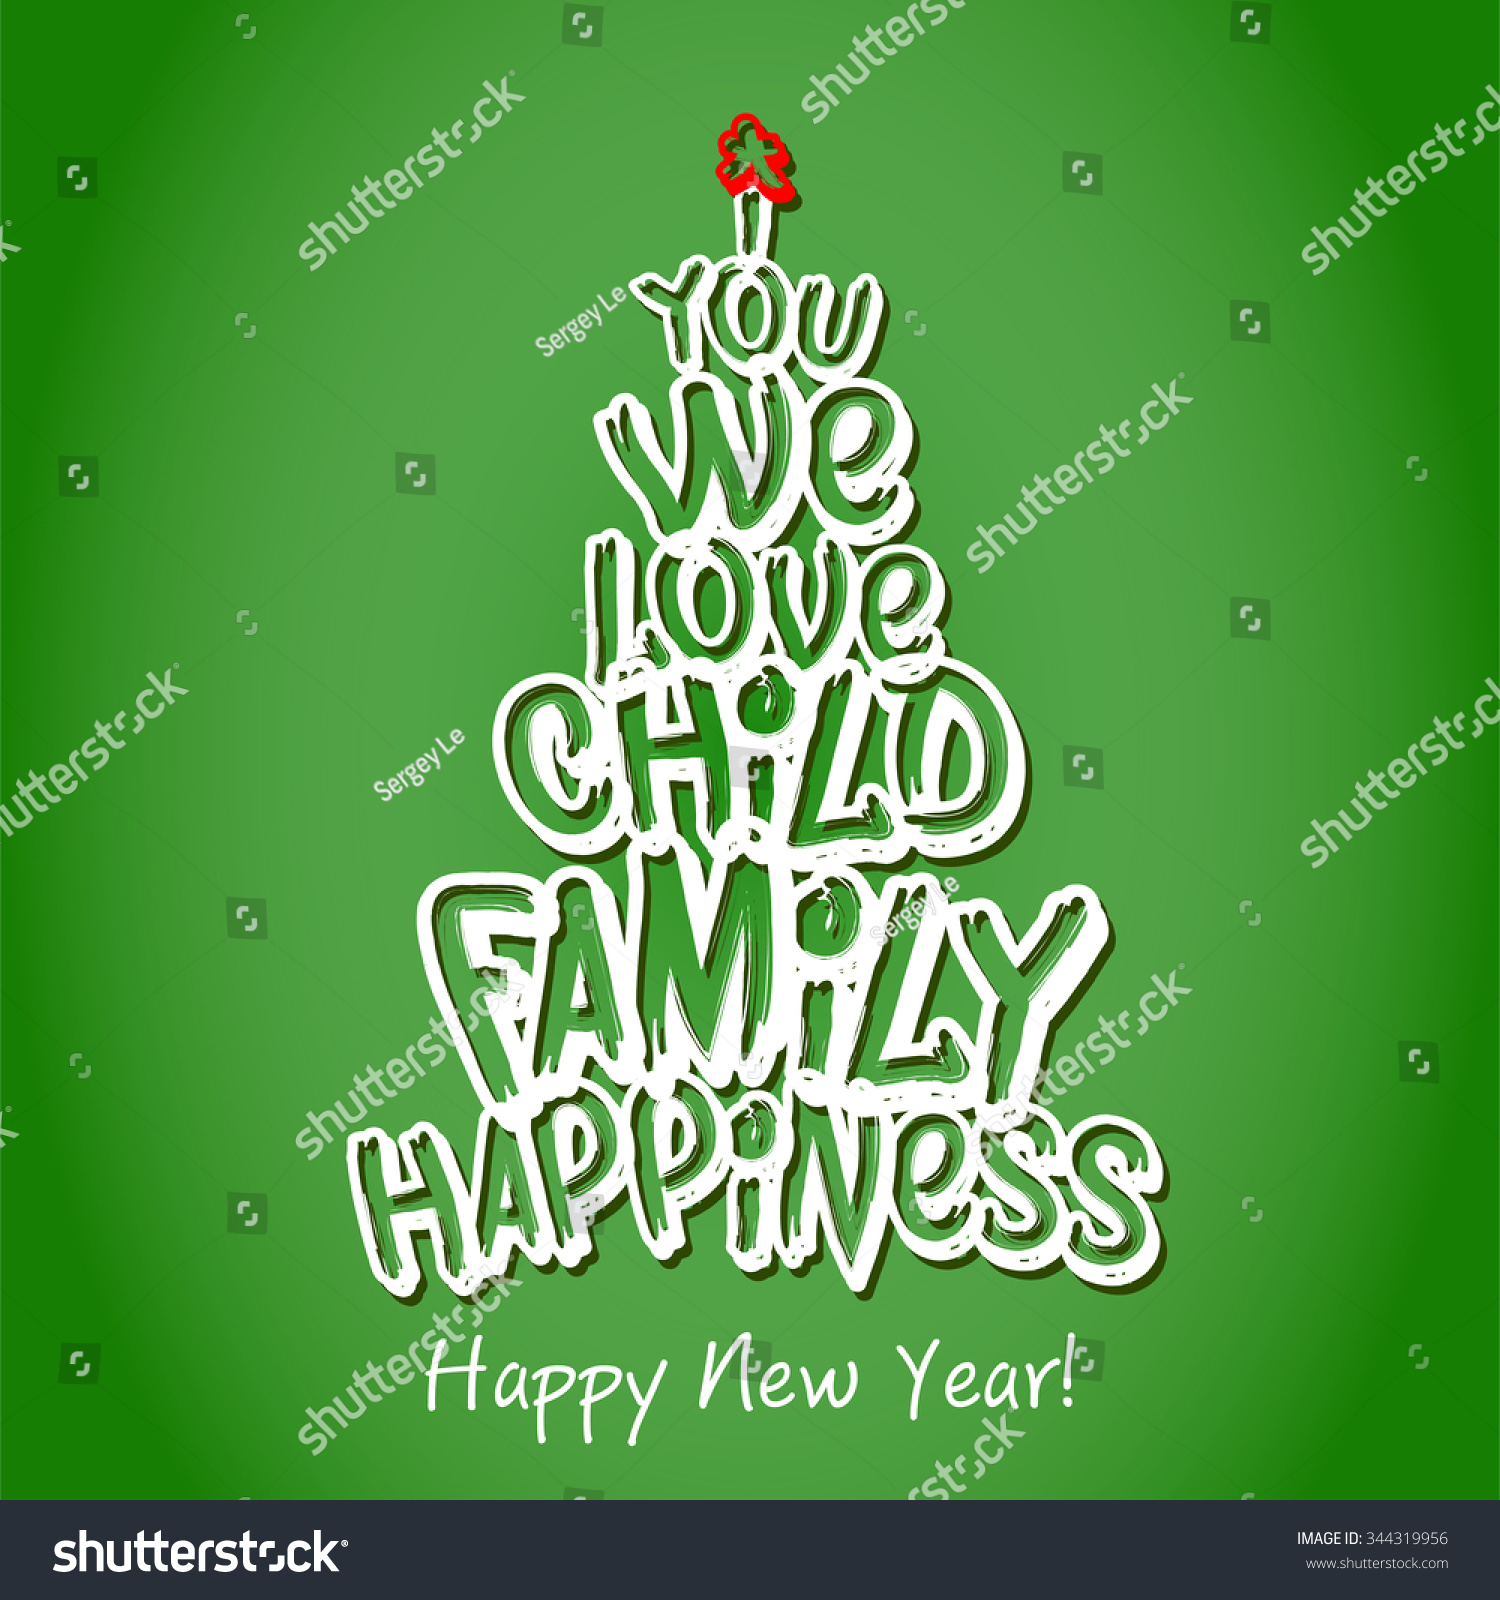 happy new year family greeting card green christmas marry text trees